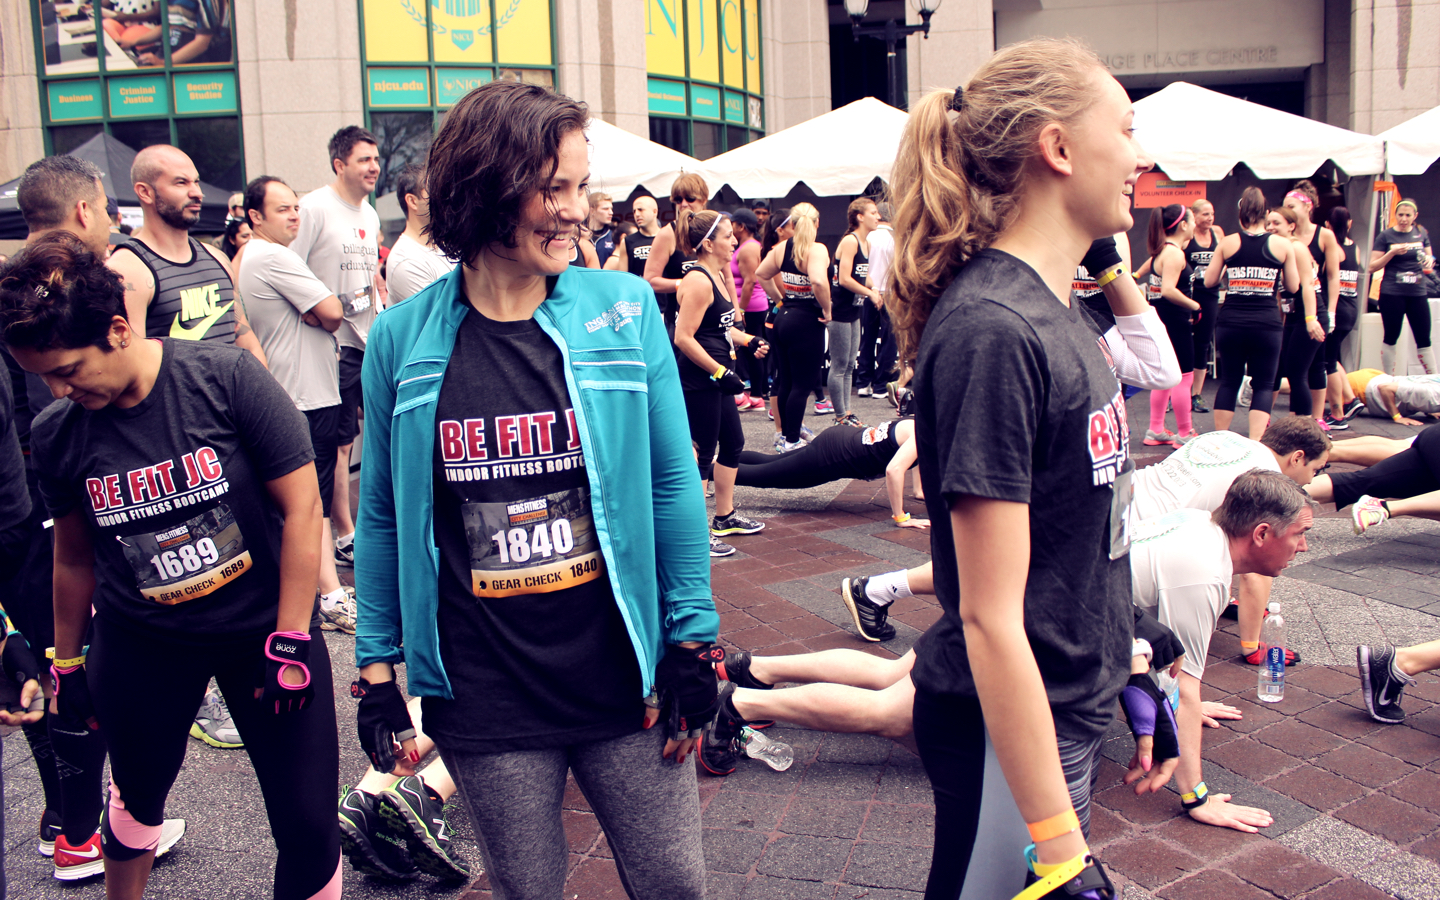 Be Fit JC Men's Fitness City Challenge Race Jersey City May 16 2015 - Warming up with the ladies!